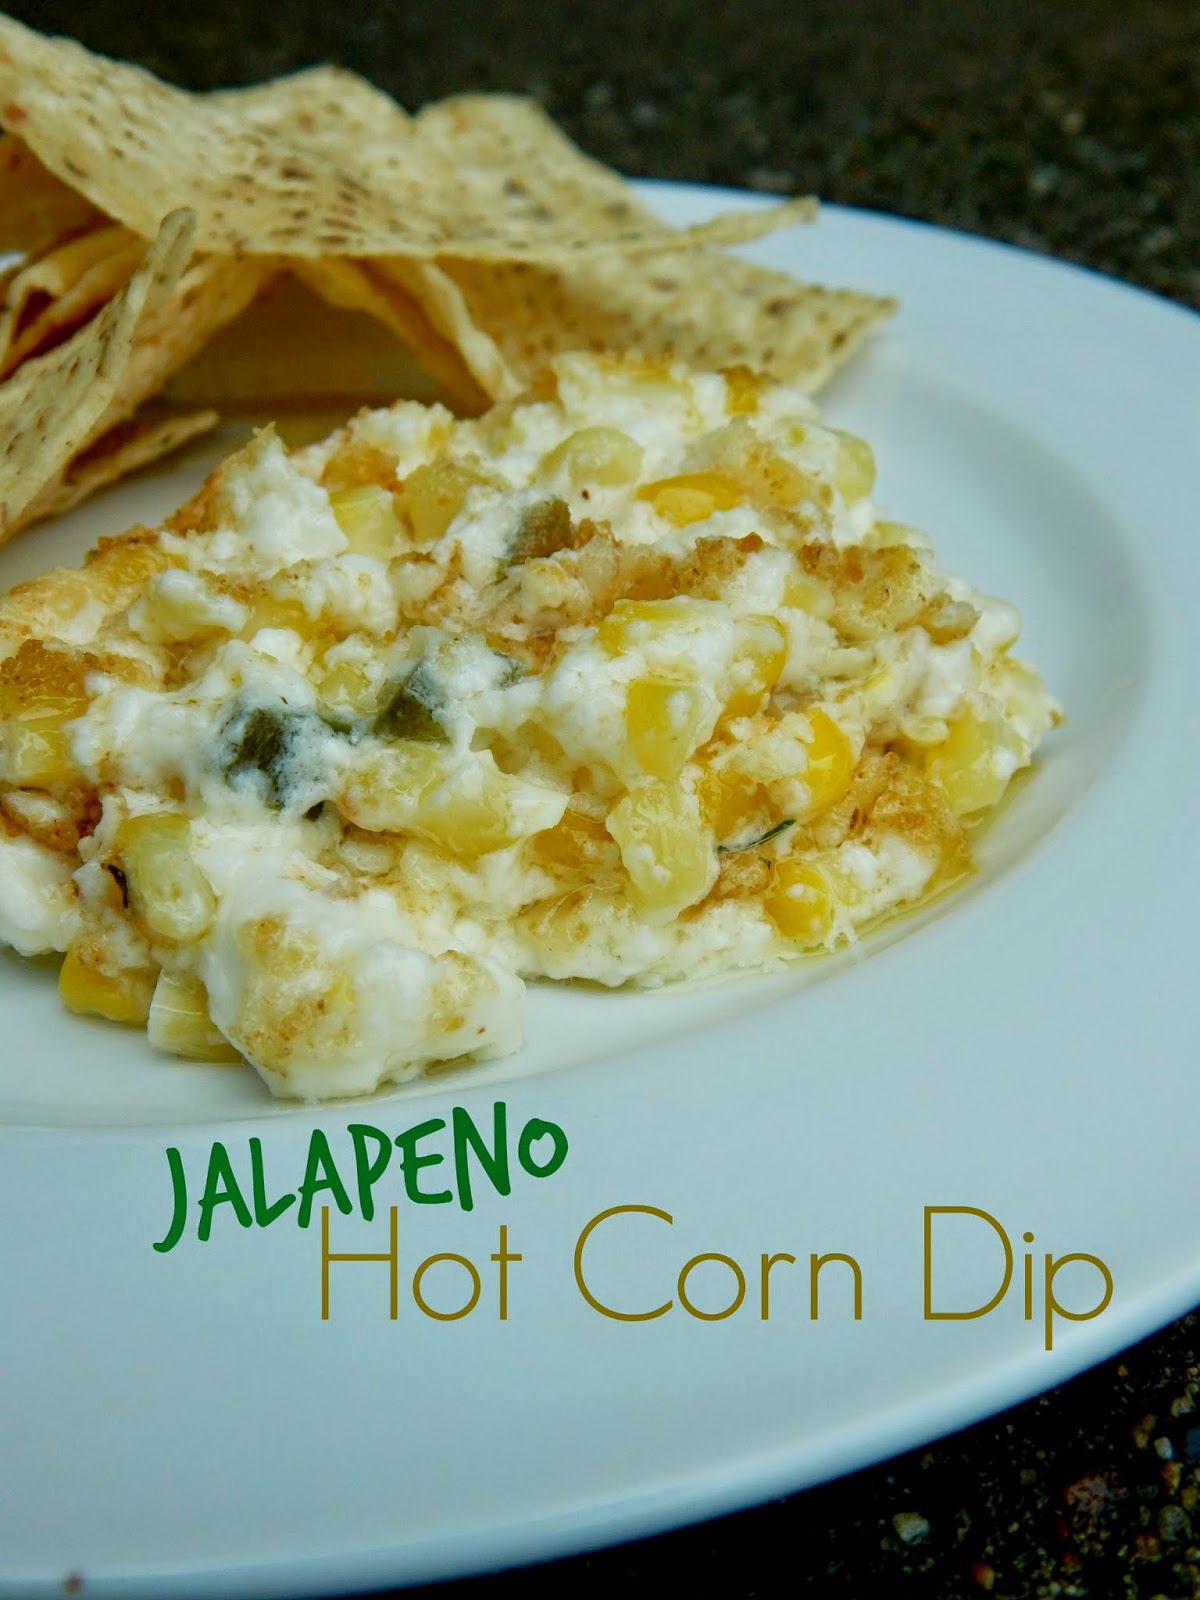 Ally's Sweet and Savory Eats: Jalapeno Hot Corn Dip